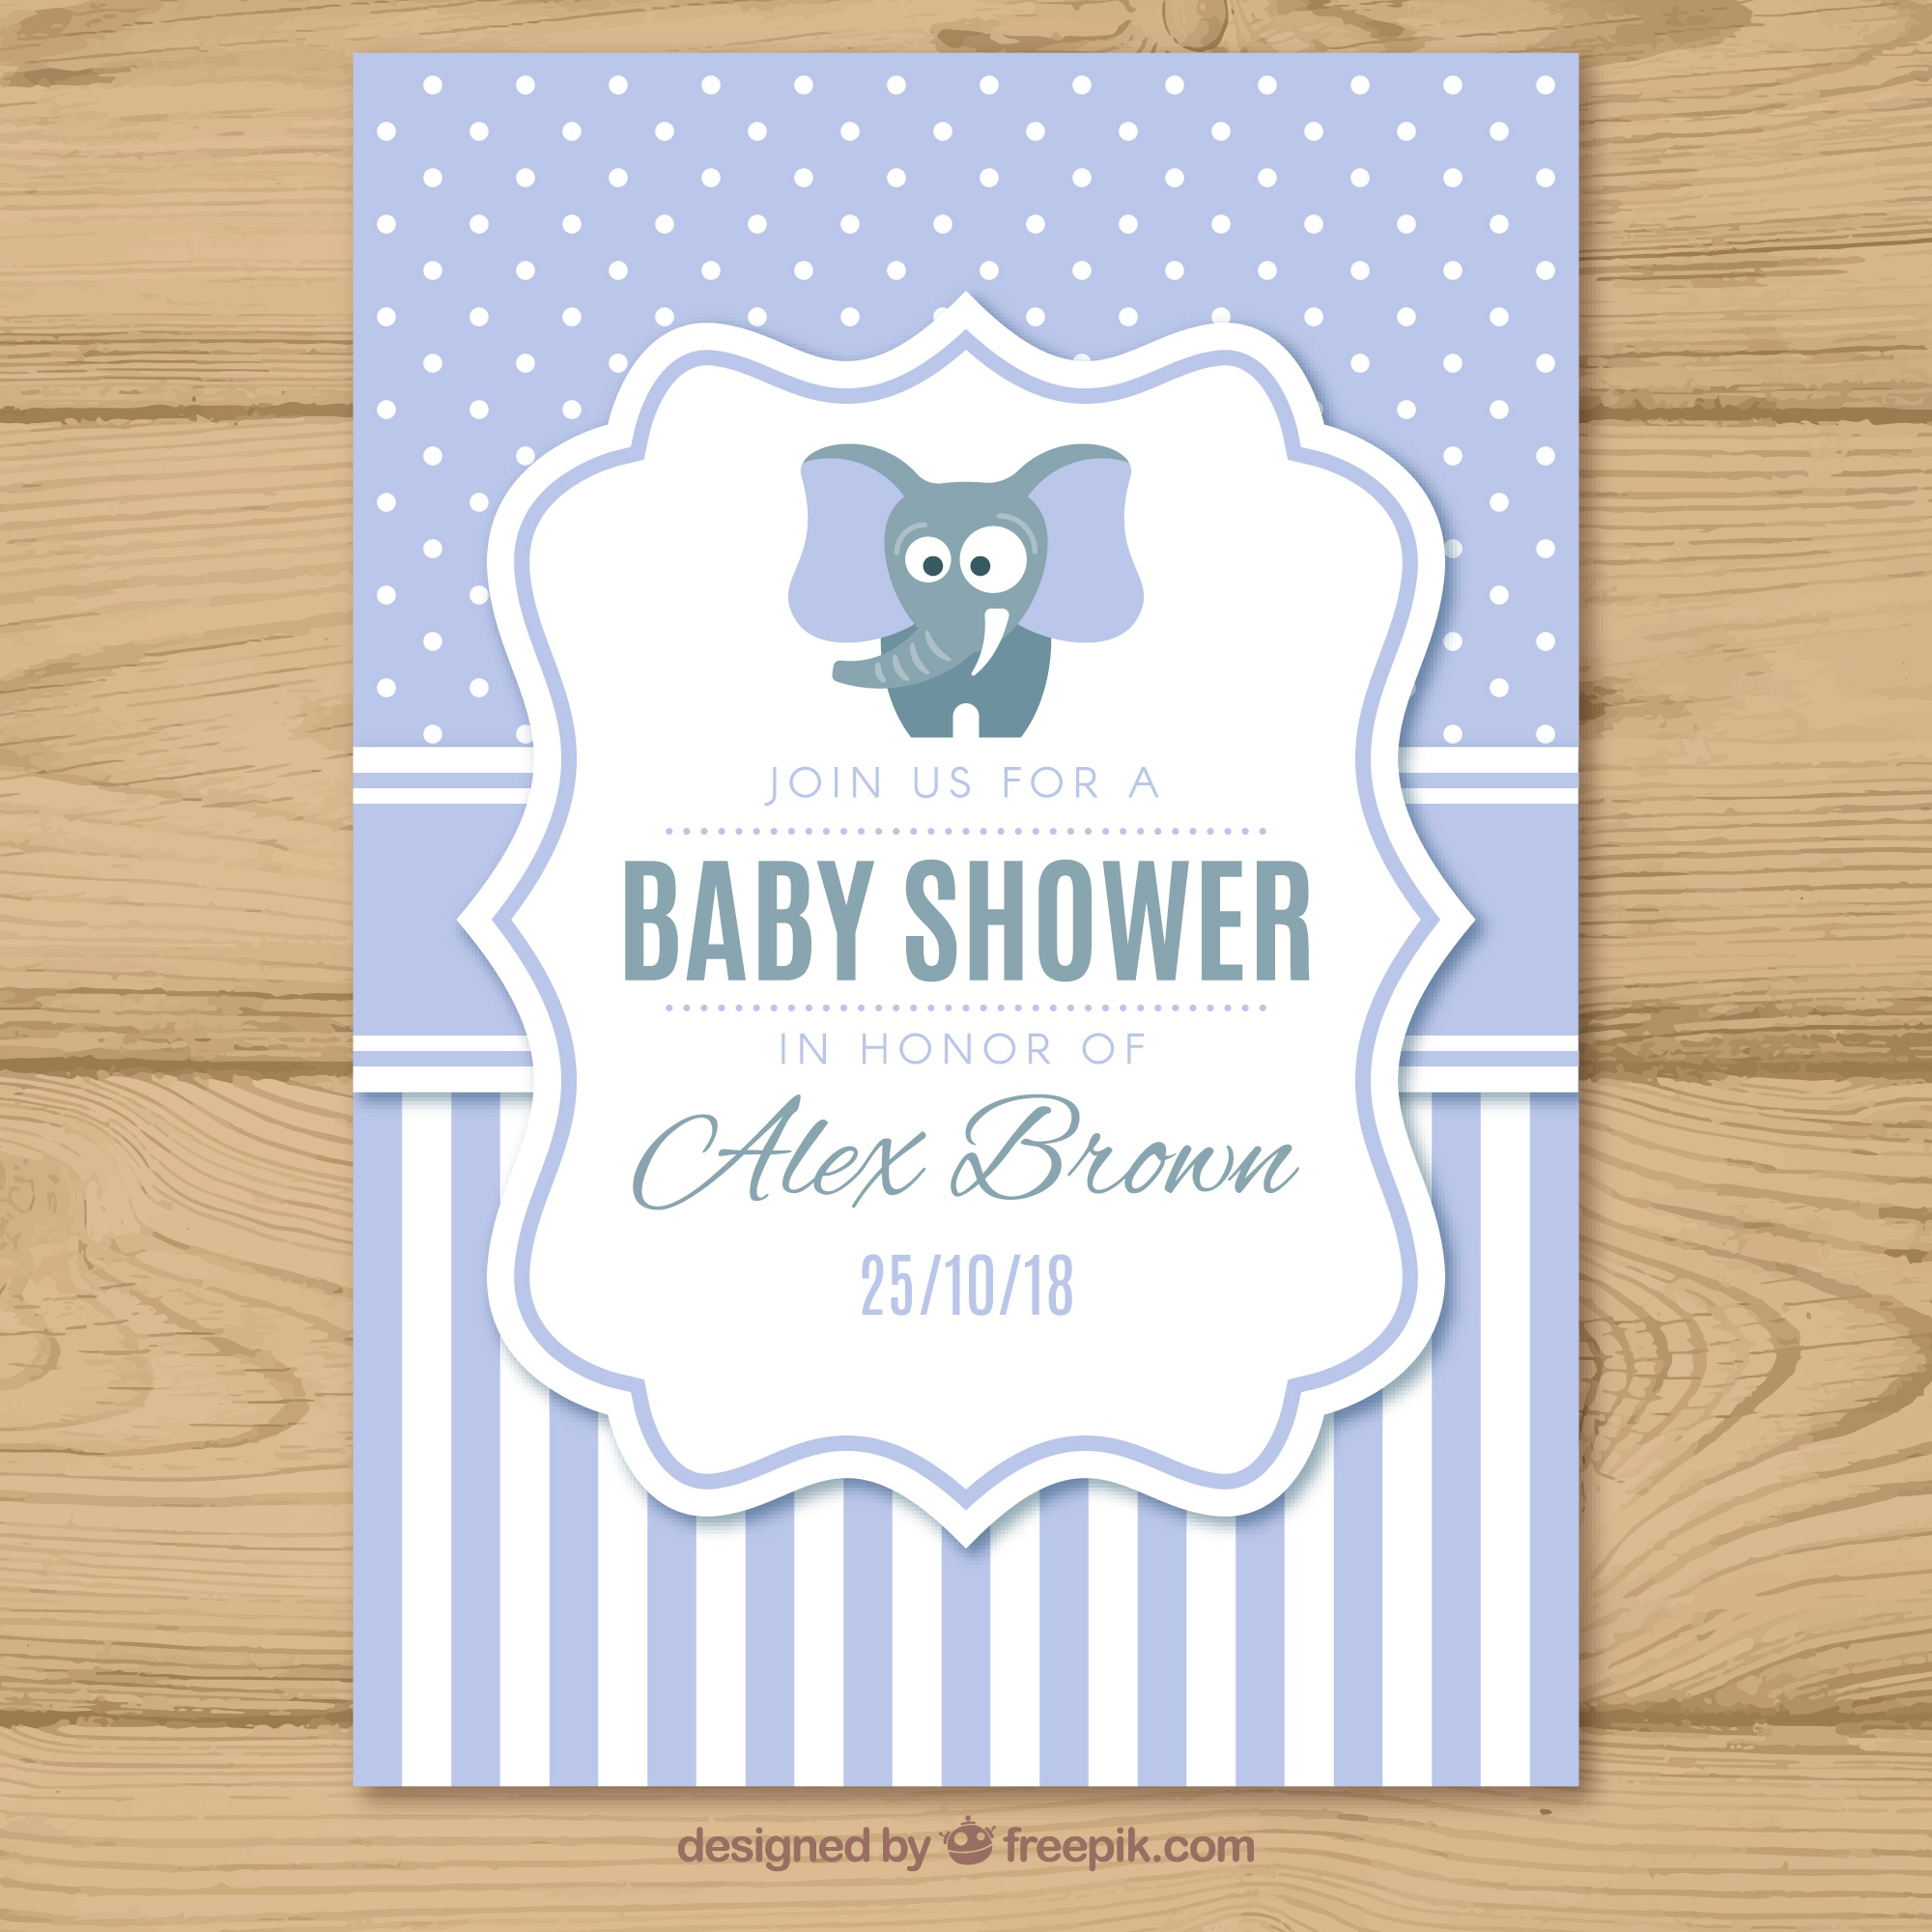 Baby shower invitation with pattern in flat style